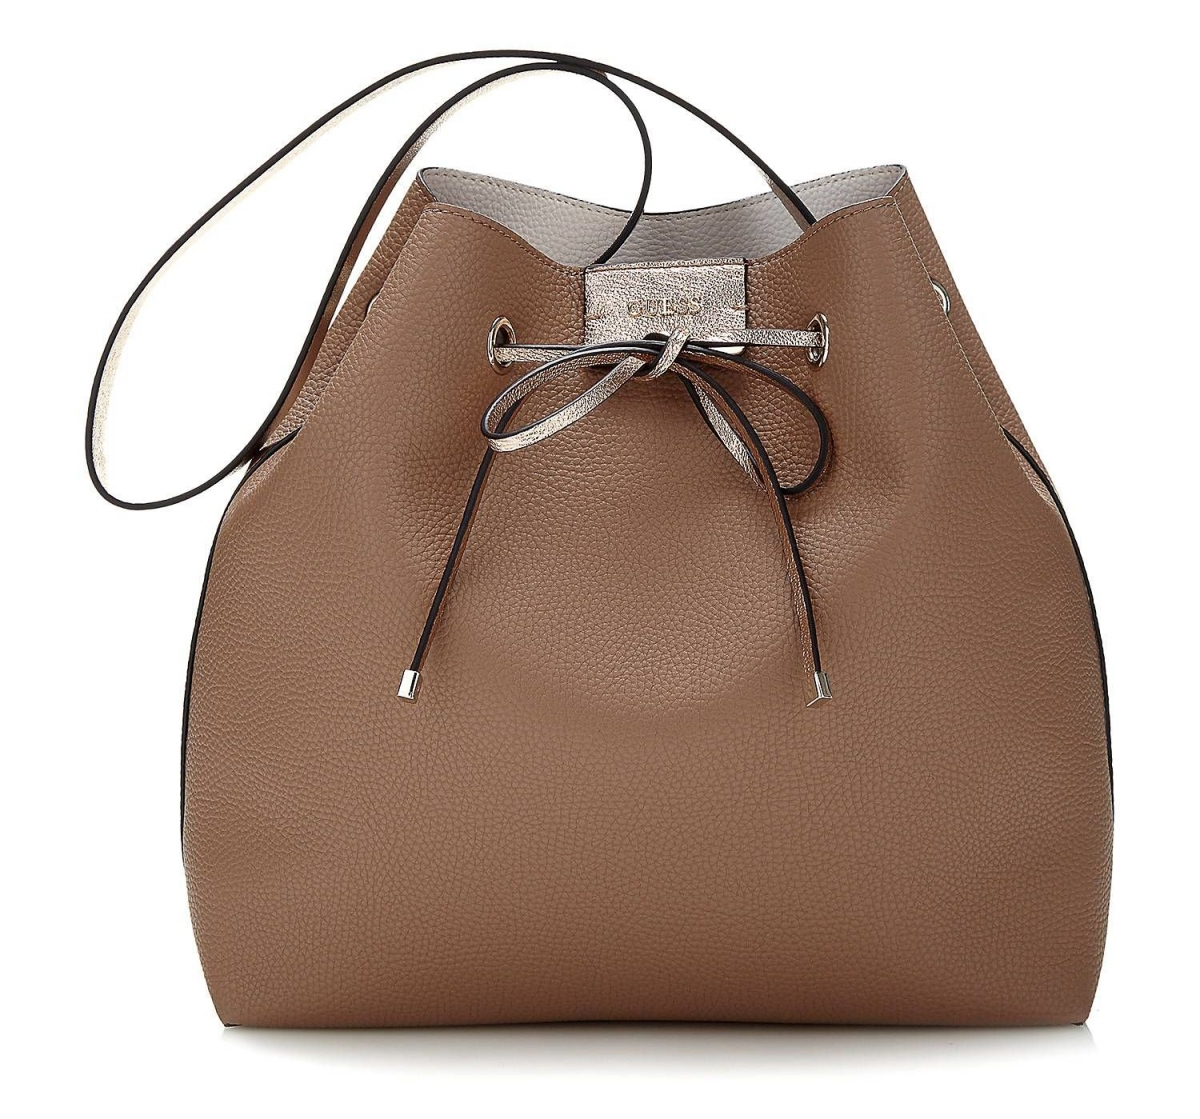 Guess Bobbi Reversible Bucket Bag 3v1, hnědo-bílá